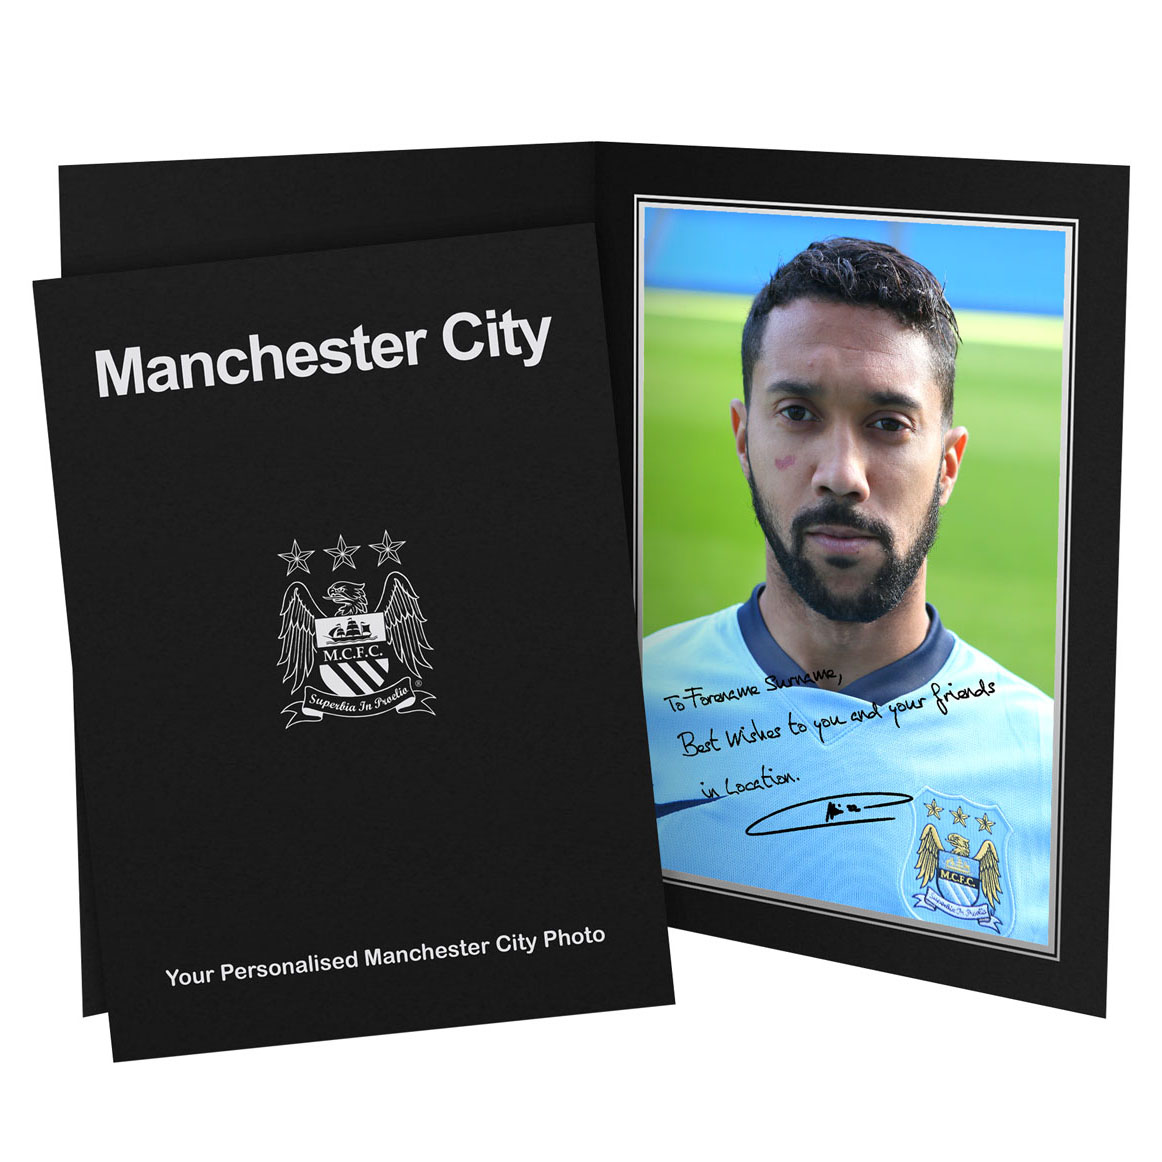 Manchester City Personalised Signature Photo in Presentation Folder - Gael Clichy